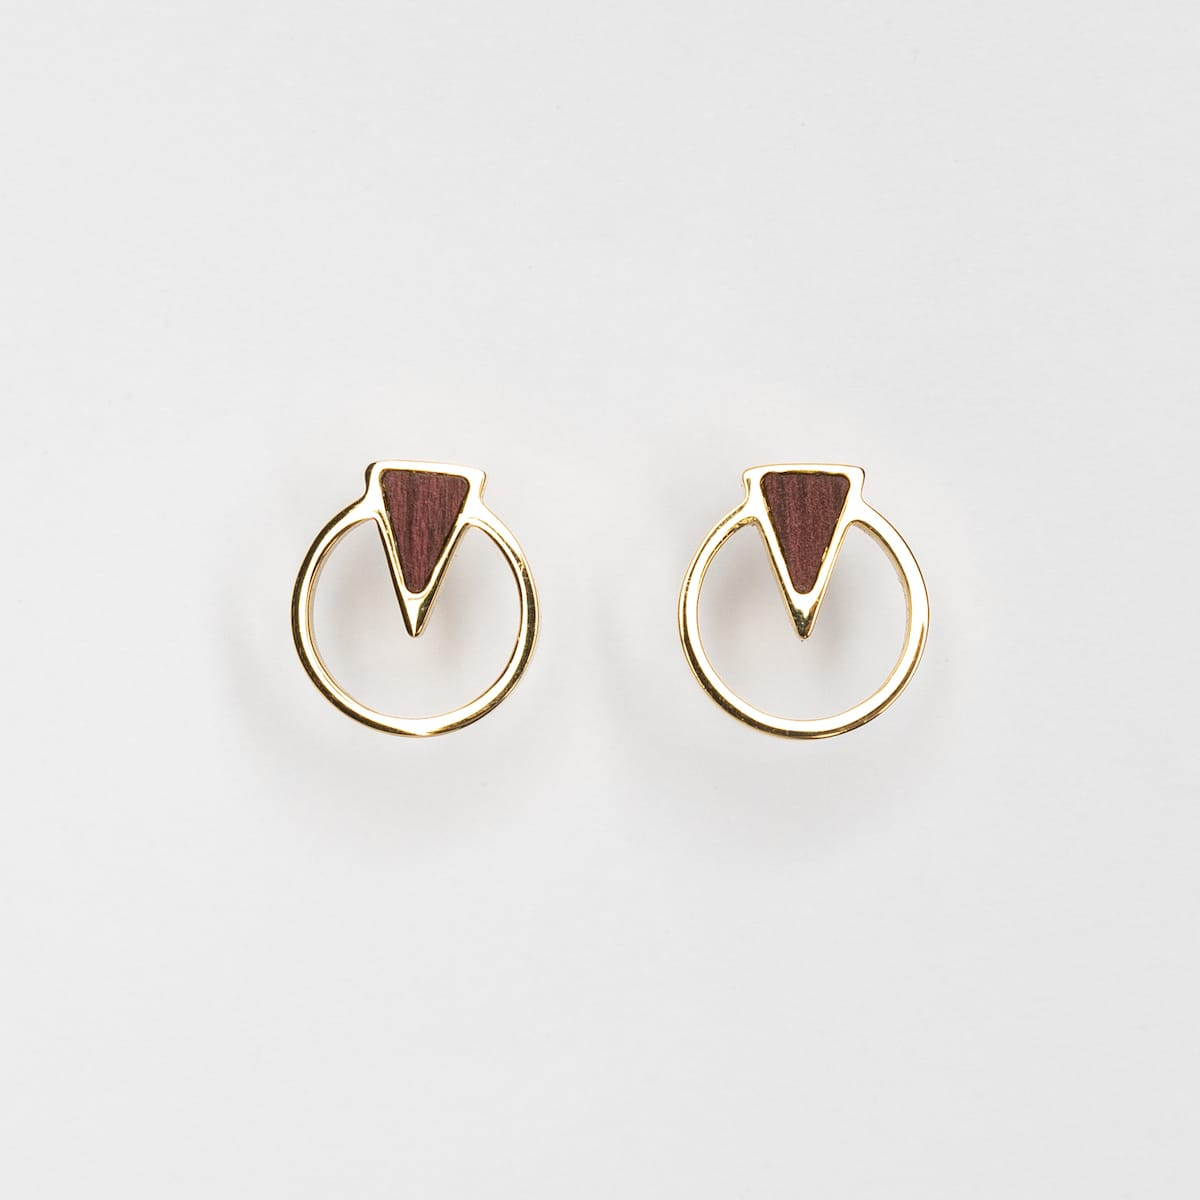 Focus Earrings $45